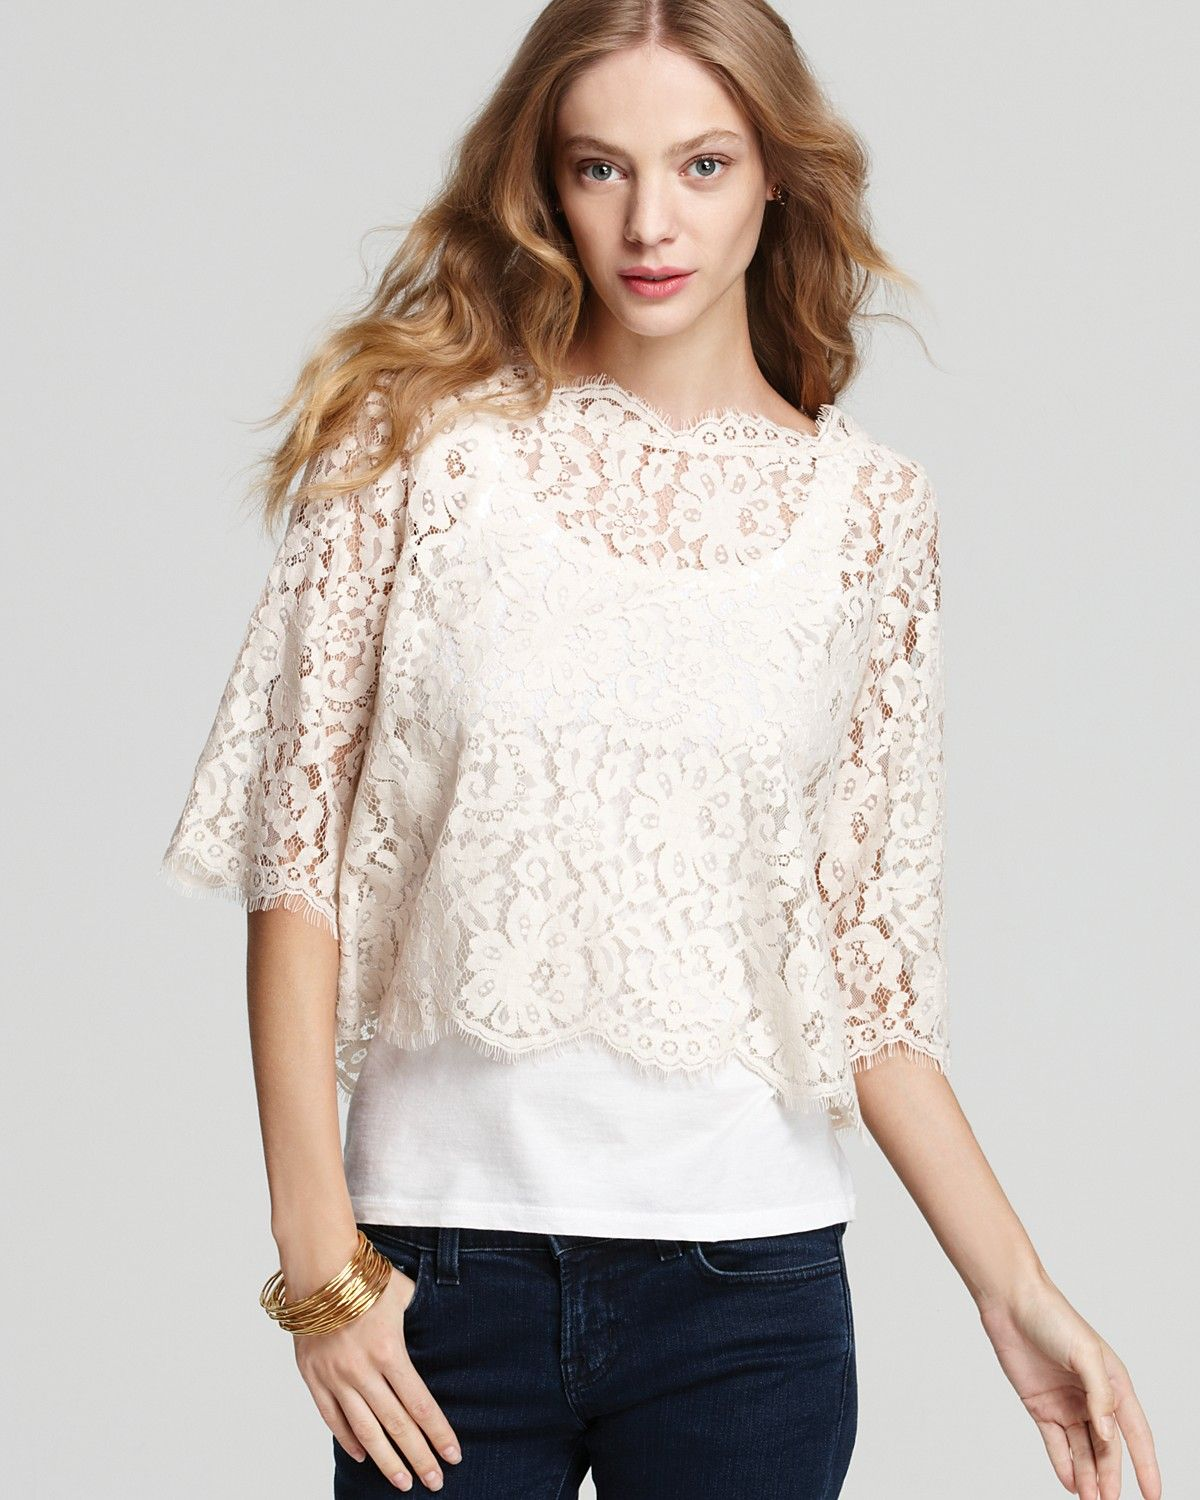 d41501bdfbd5d Joie Top - Elvia Lace